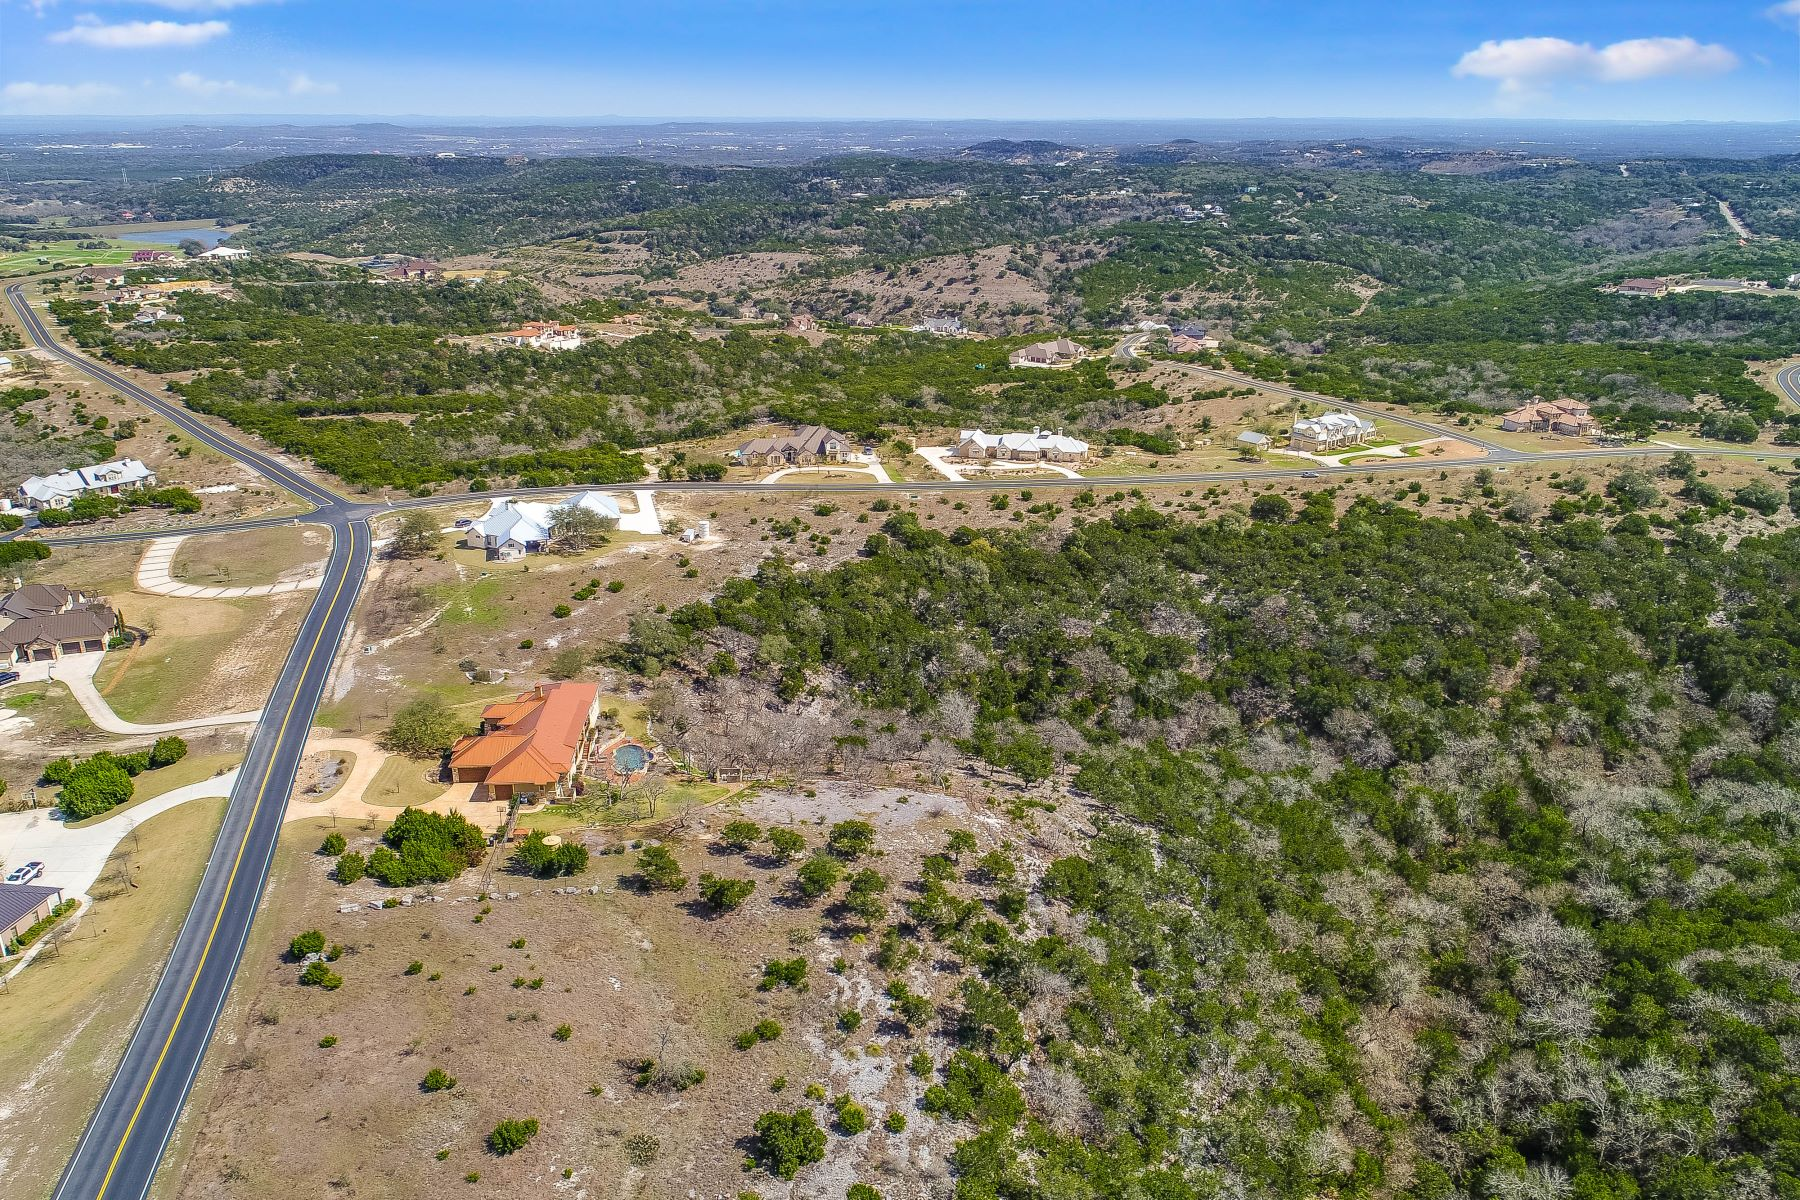 Additional photo for property listing at Panoramic Views on Hill Country Acreage Lot 47 Marquise Boerne, Texas 78006 United States